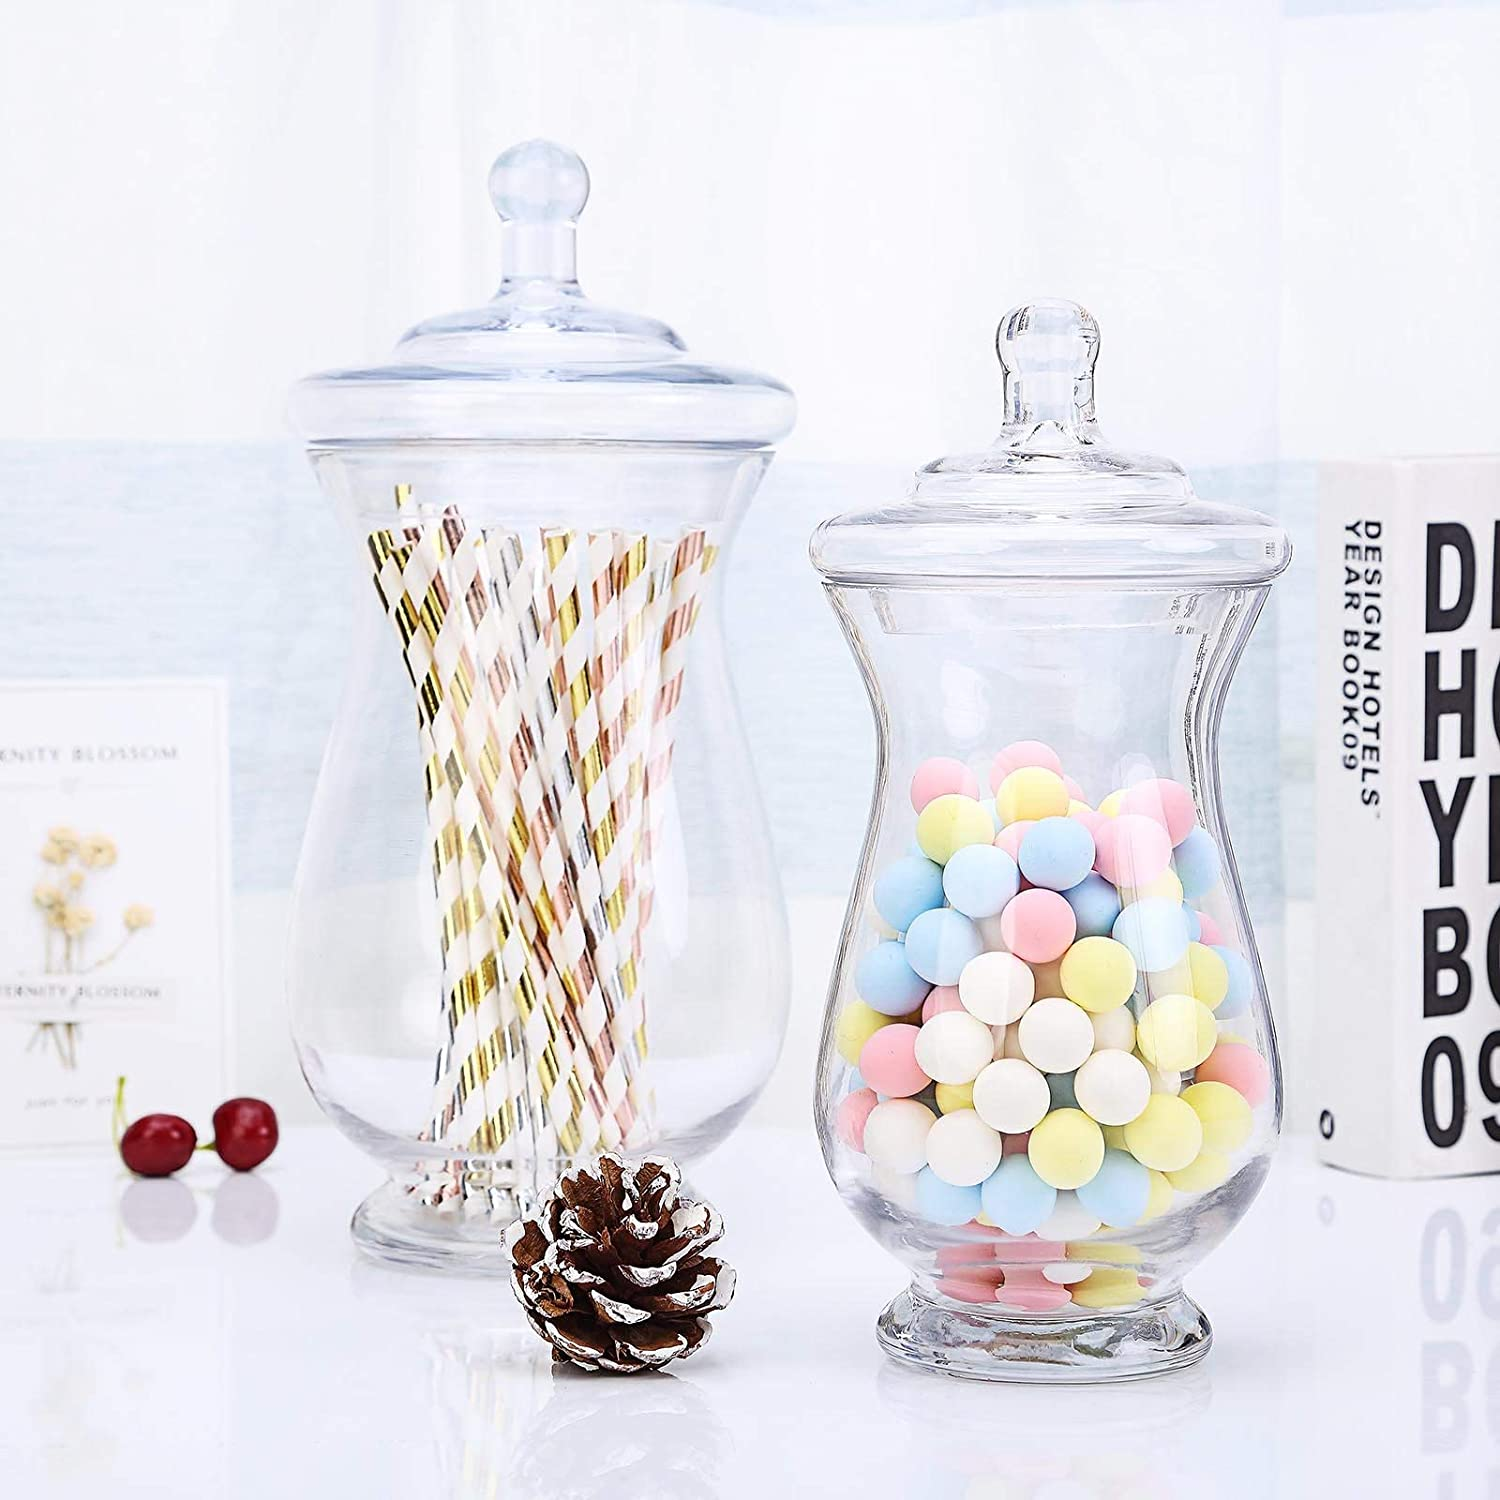 Efavormart 2 Pack | Clear Glass Apothecary Jars Candy Buffet Containers with Lids for Wedding Party Favor Decor - 10